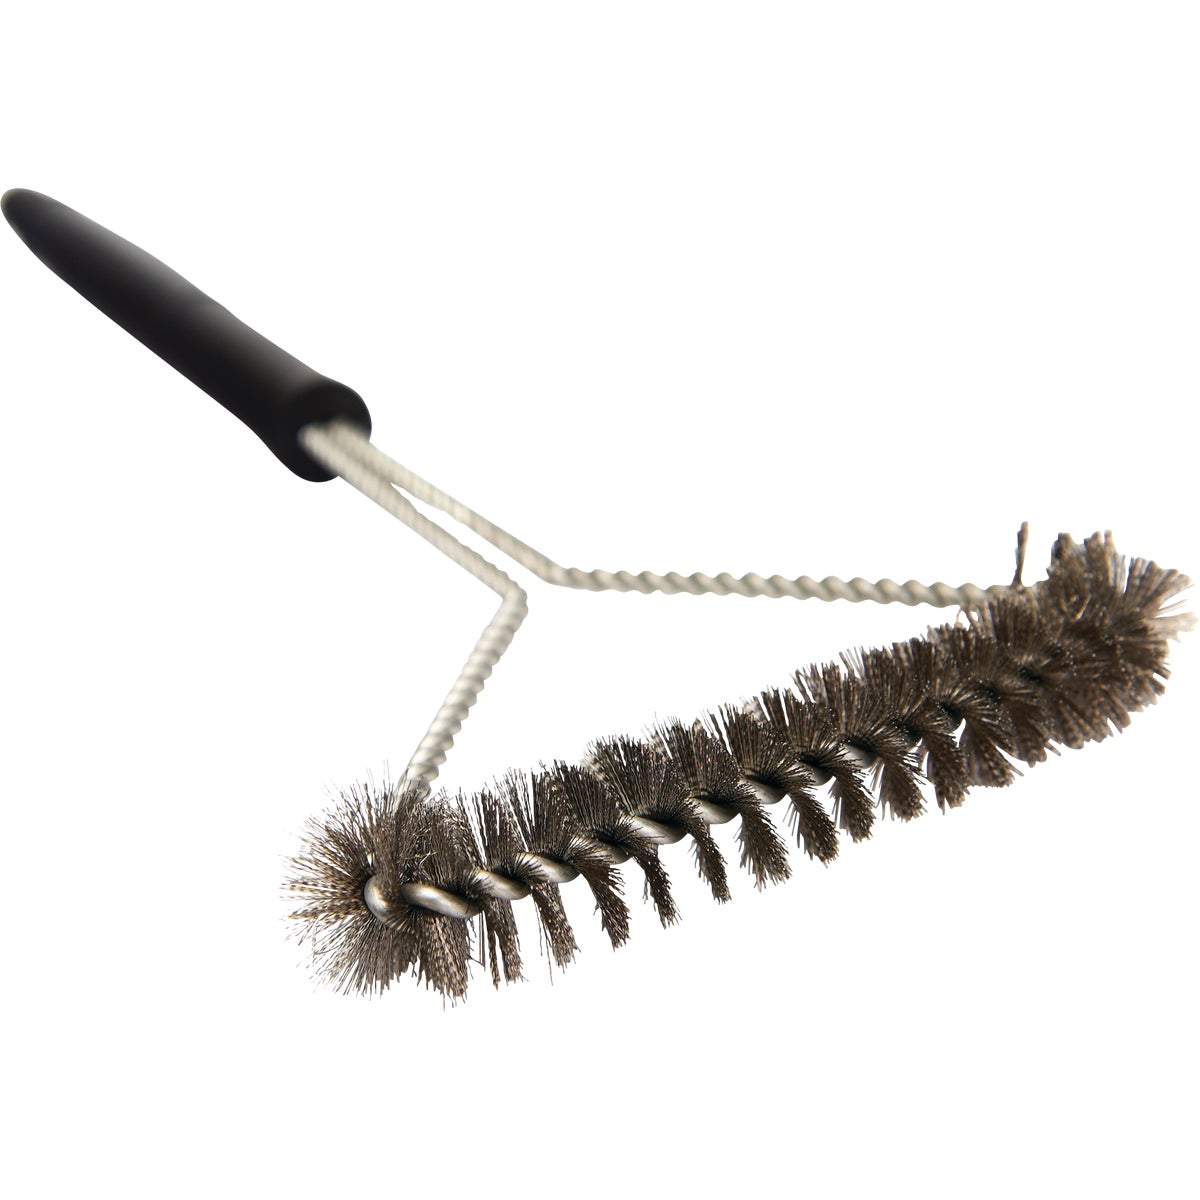 WIDE SS GRILL BRUSH - 77641 by Onward Multi Corp Y1